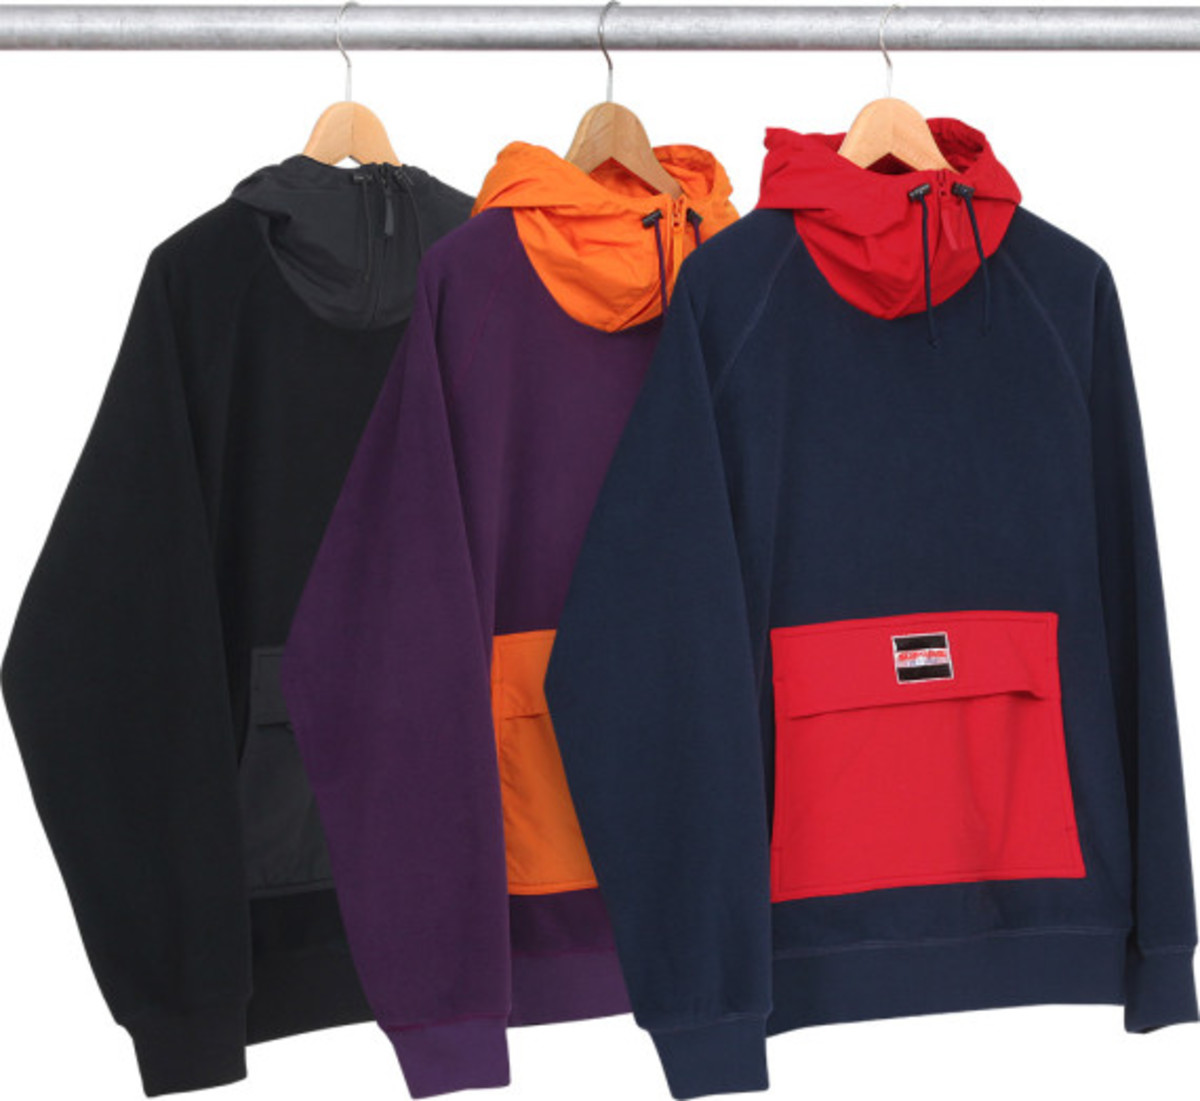 supreme-fall-winter-2013-outerwear-collection-95